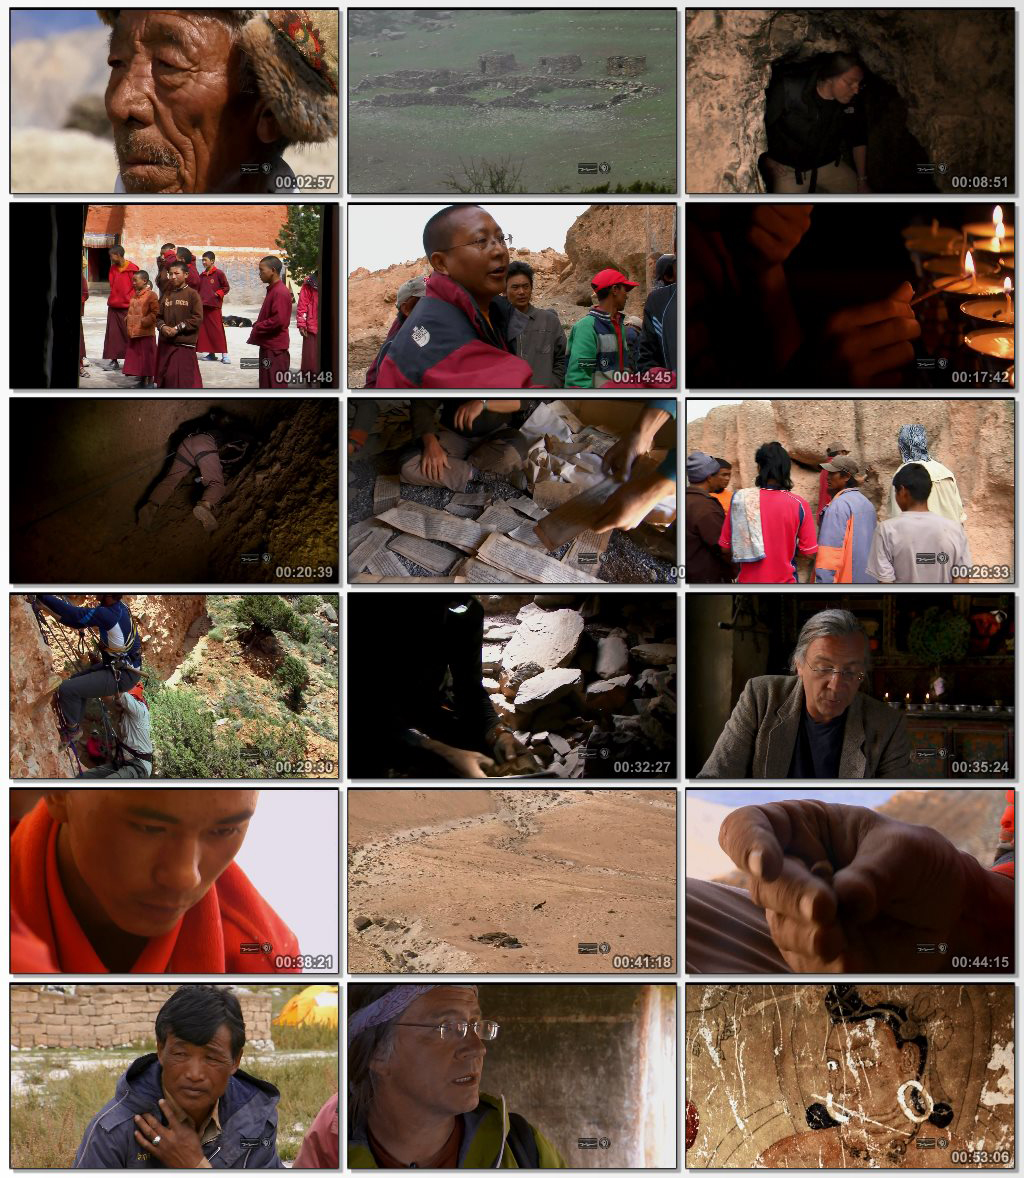 NG.Secrets.of.ShangriLa.Quest.for.Sacred.Caves.720p.HDTV.x264.AC3.MVGroup.mkv_thumbs_[2014.12.10_12.00.20]